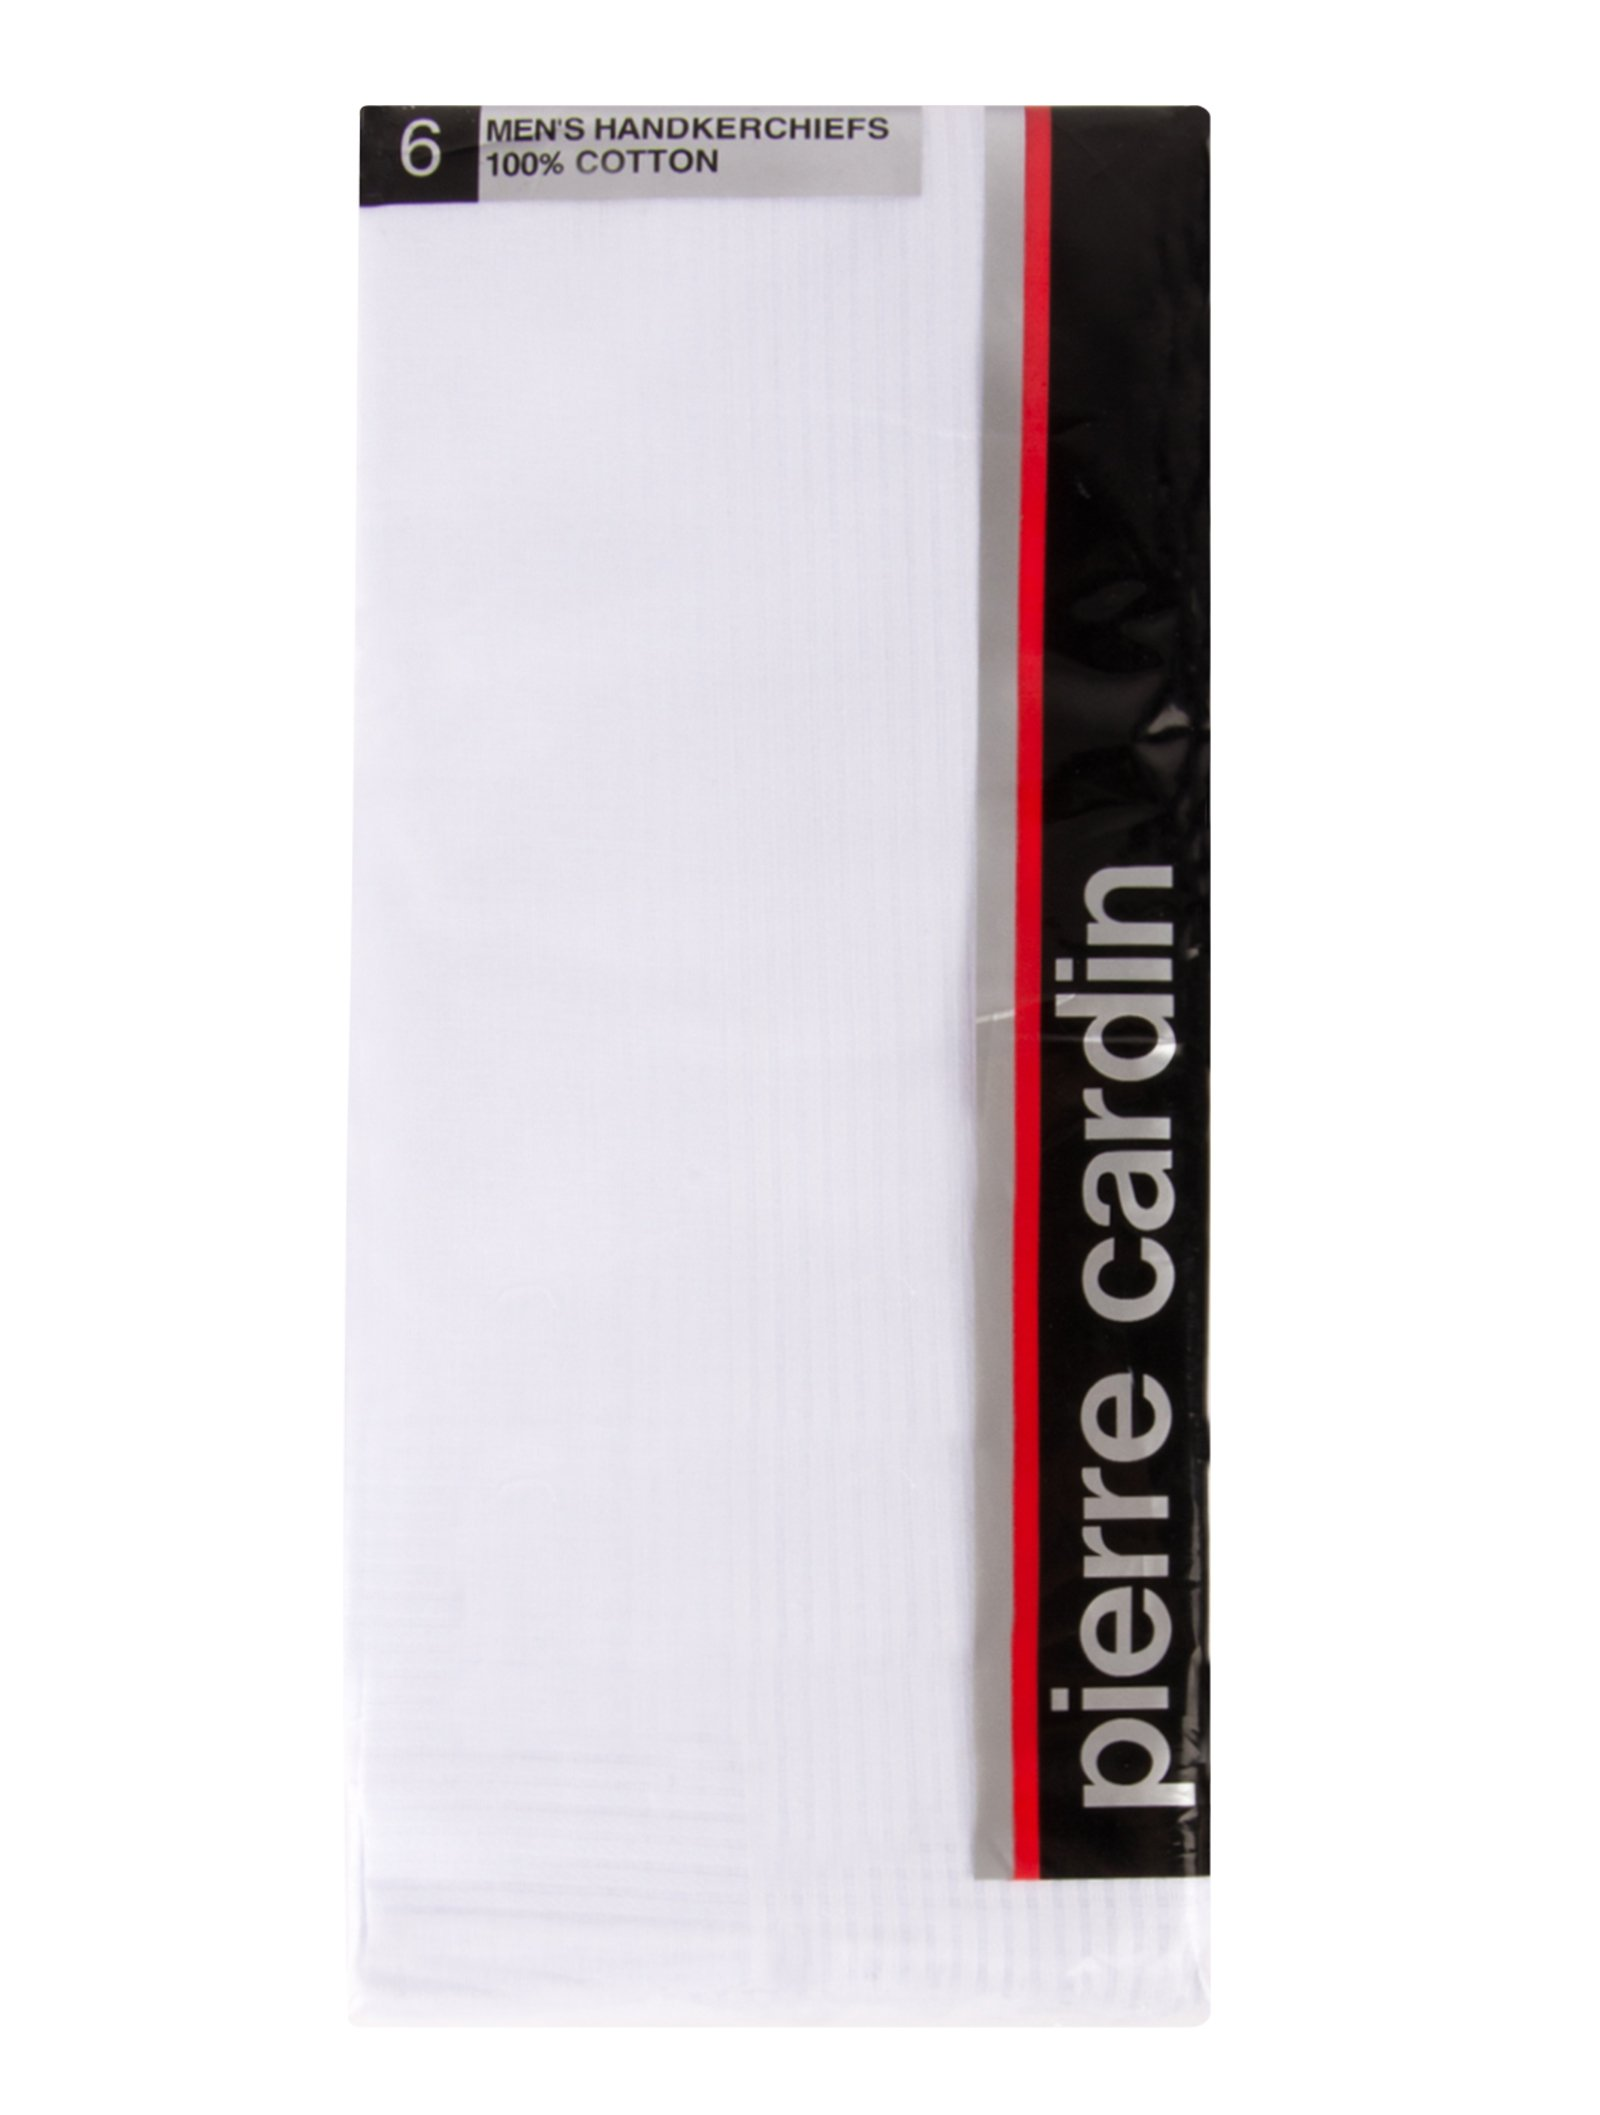 "Pierre Cardin Designer Classic Men's Handkerchiefs Hand Rolled Stripe 6 Pack Hankies Solid Pure White 100% Cotton Large 18"" x 18"""